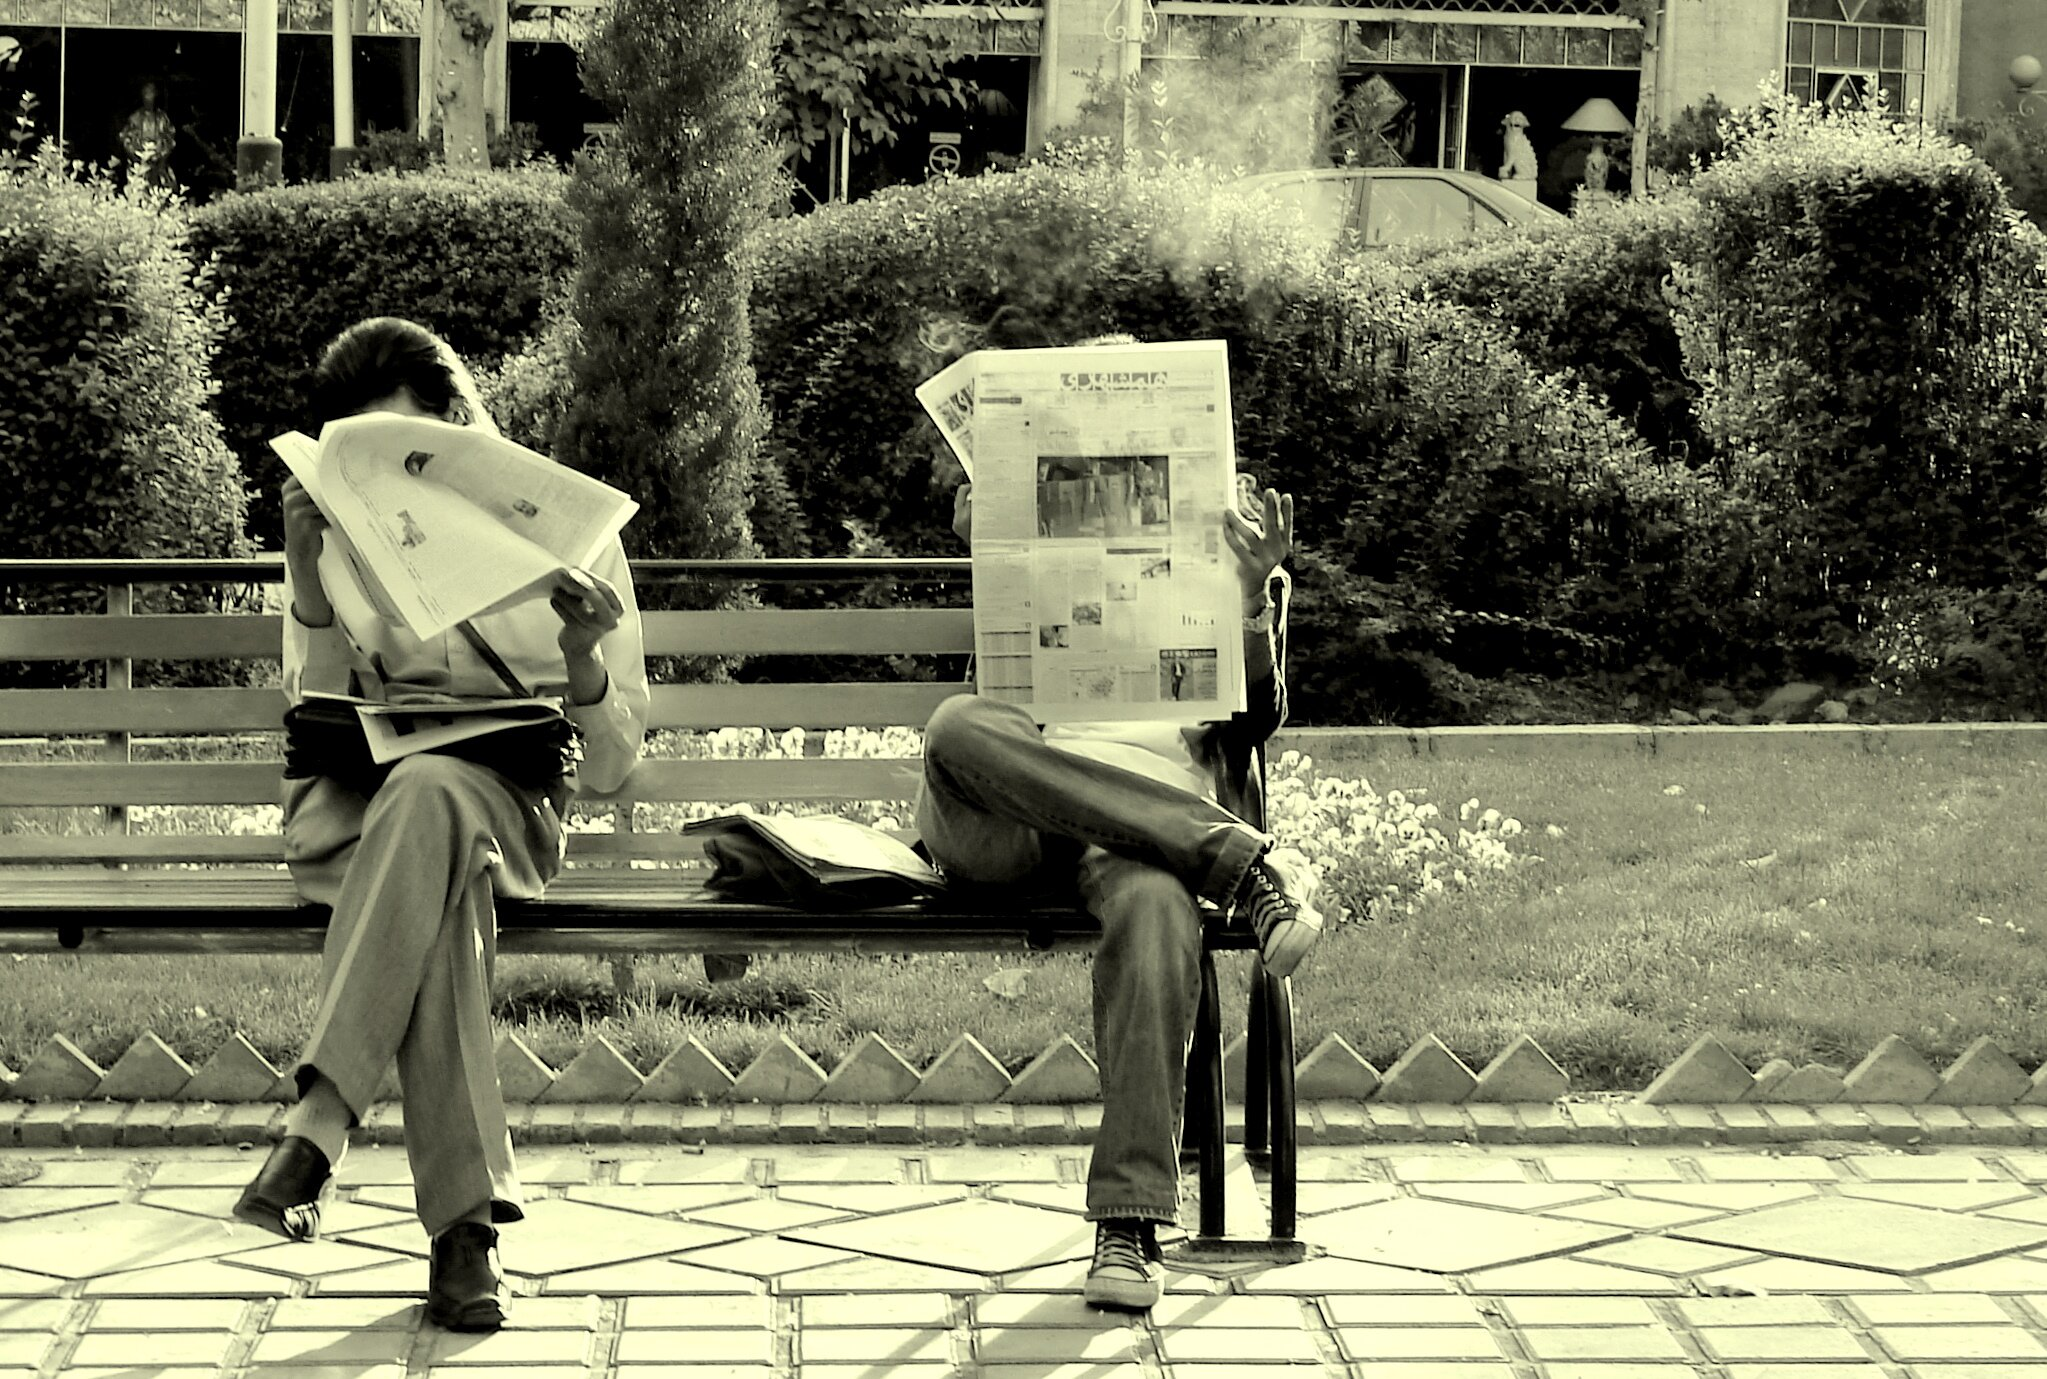 Two men sitting on a park bench and reading the newspaper